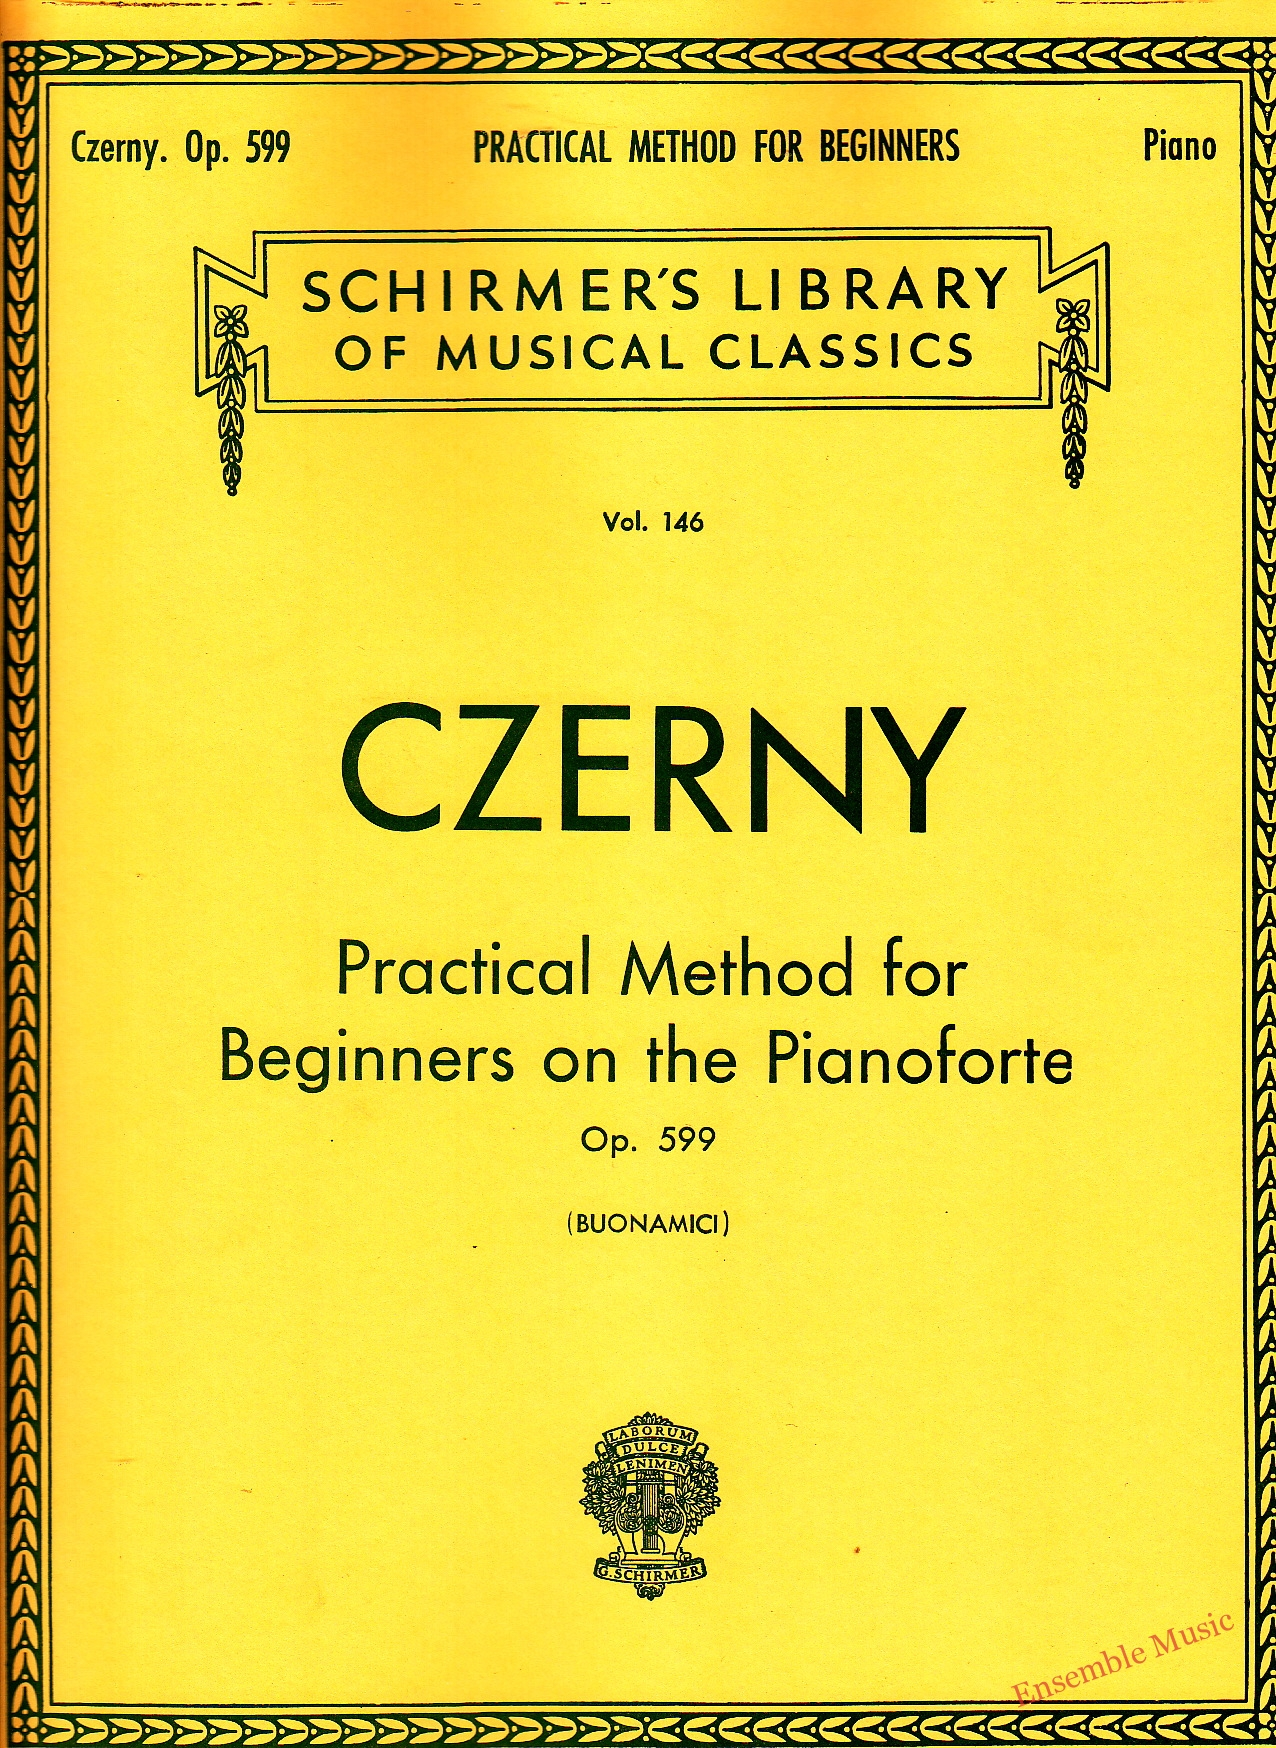 Czerny Practical Method for Beginners on the Pianoforte